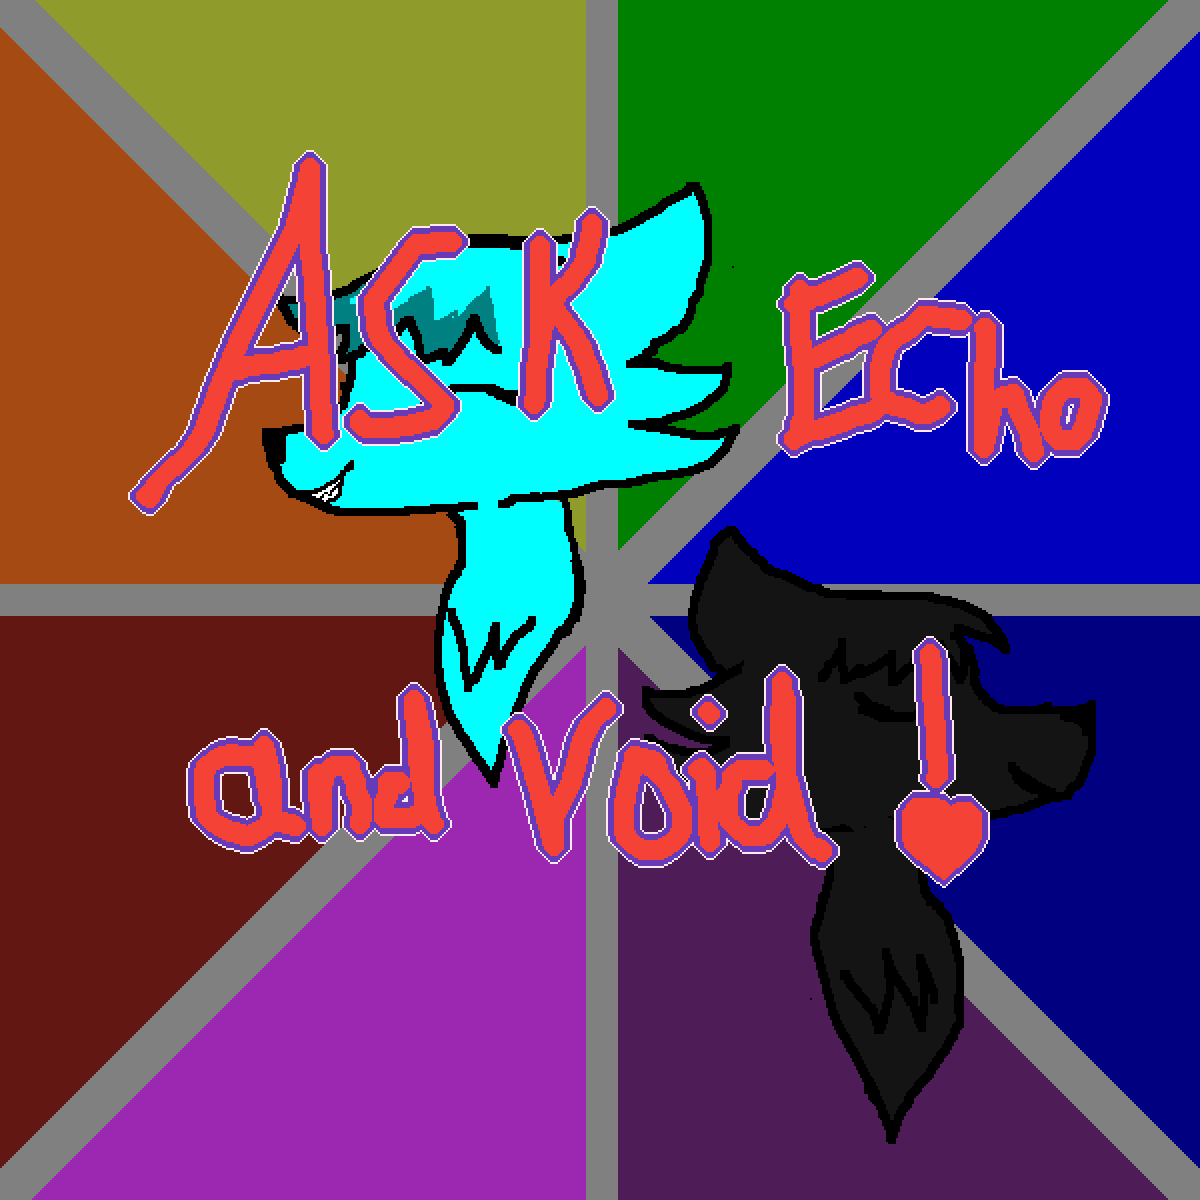 Ask Echo And Void! by Lill1569